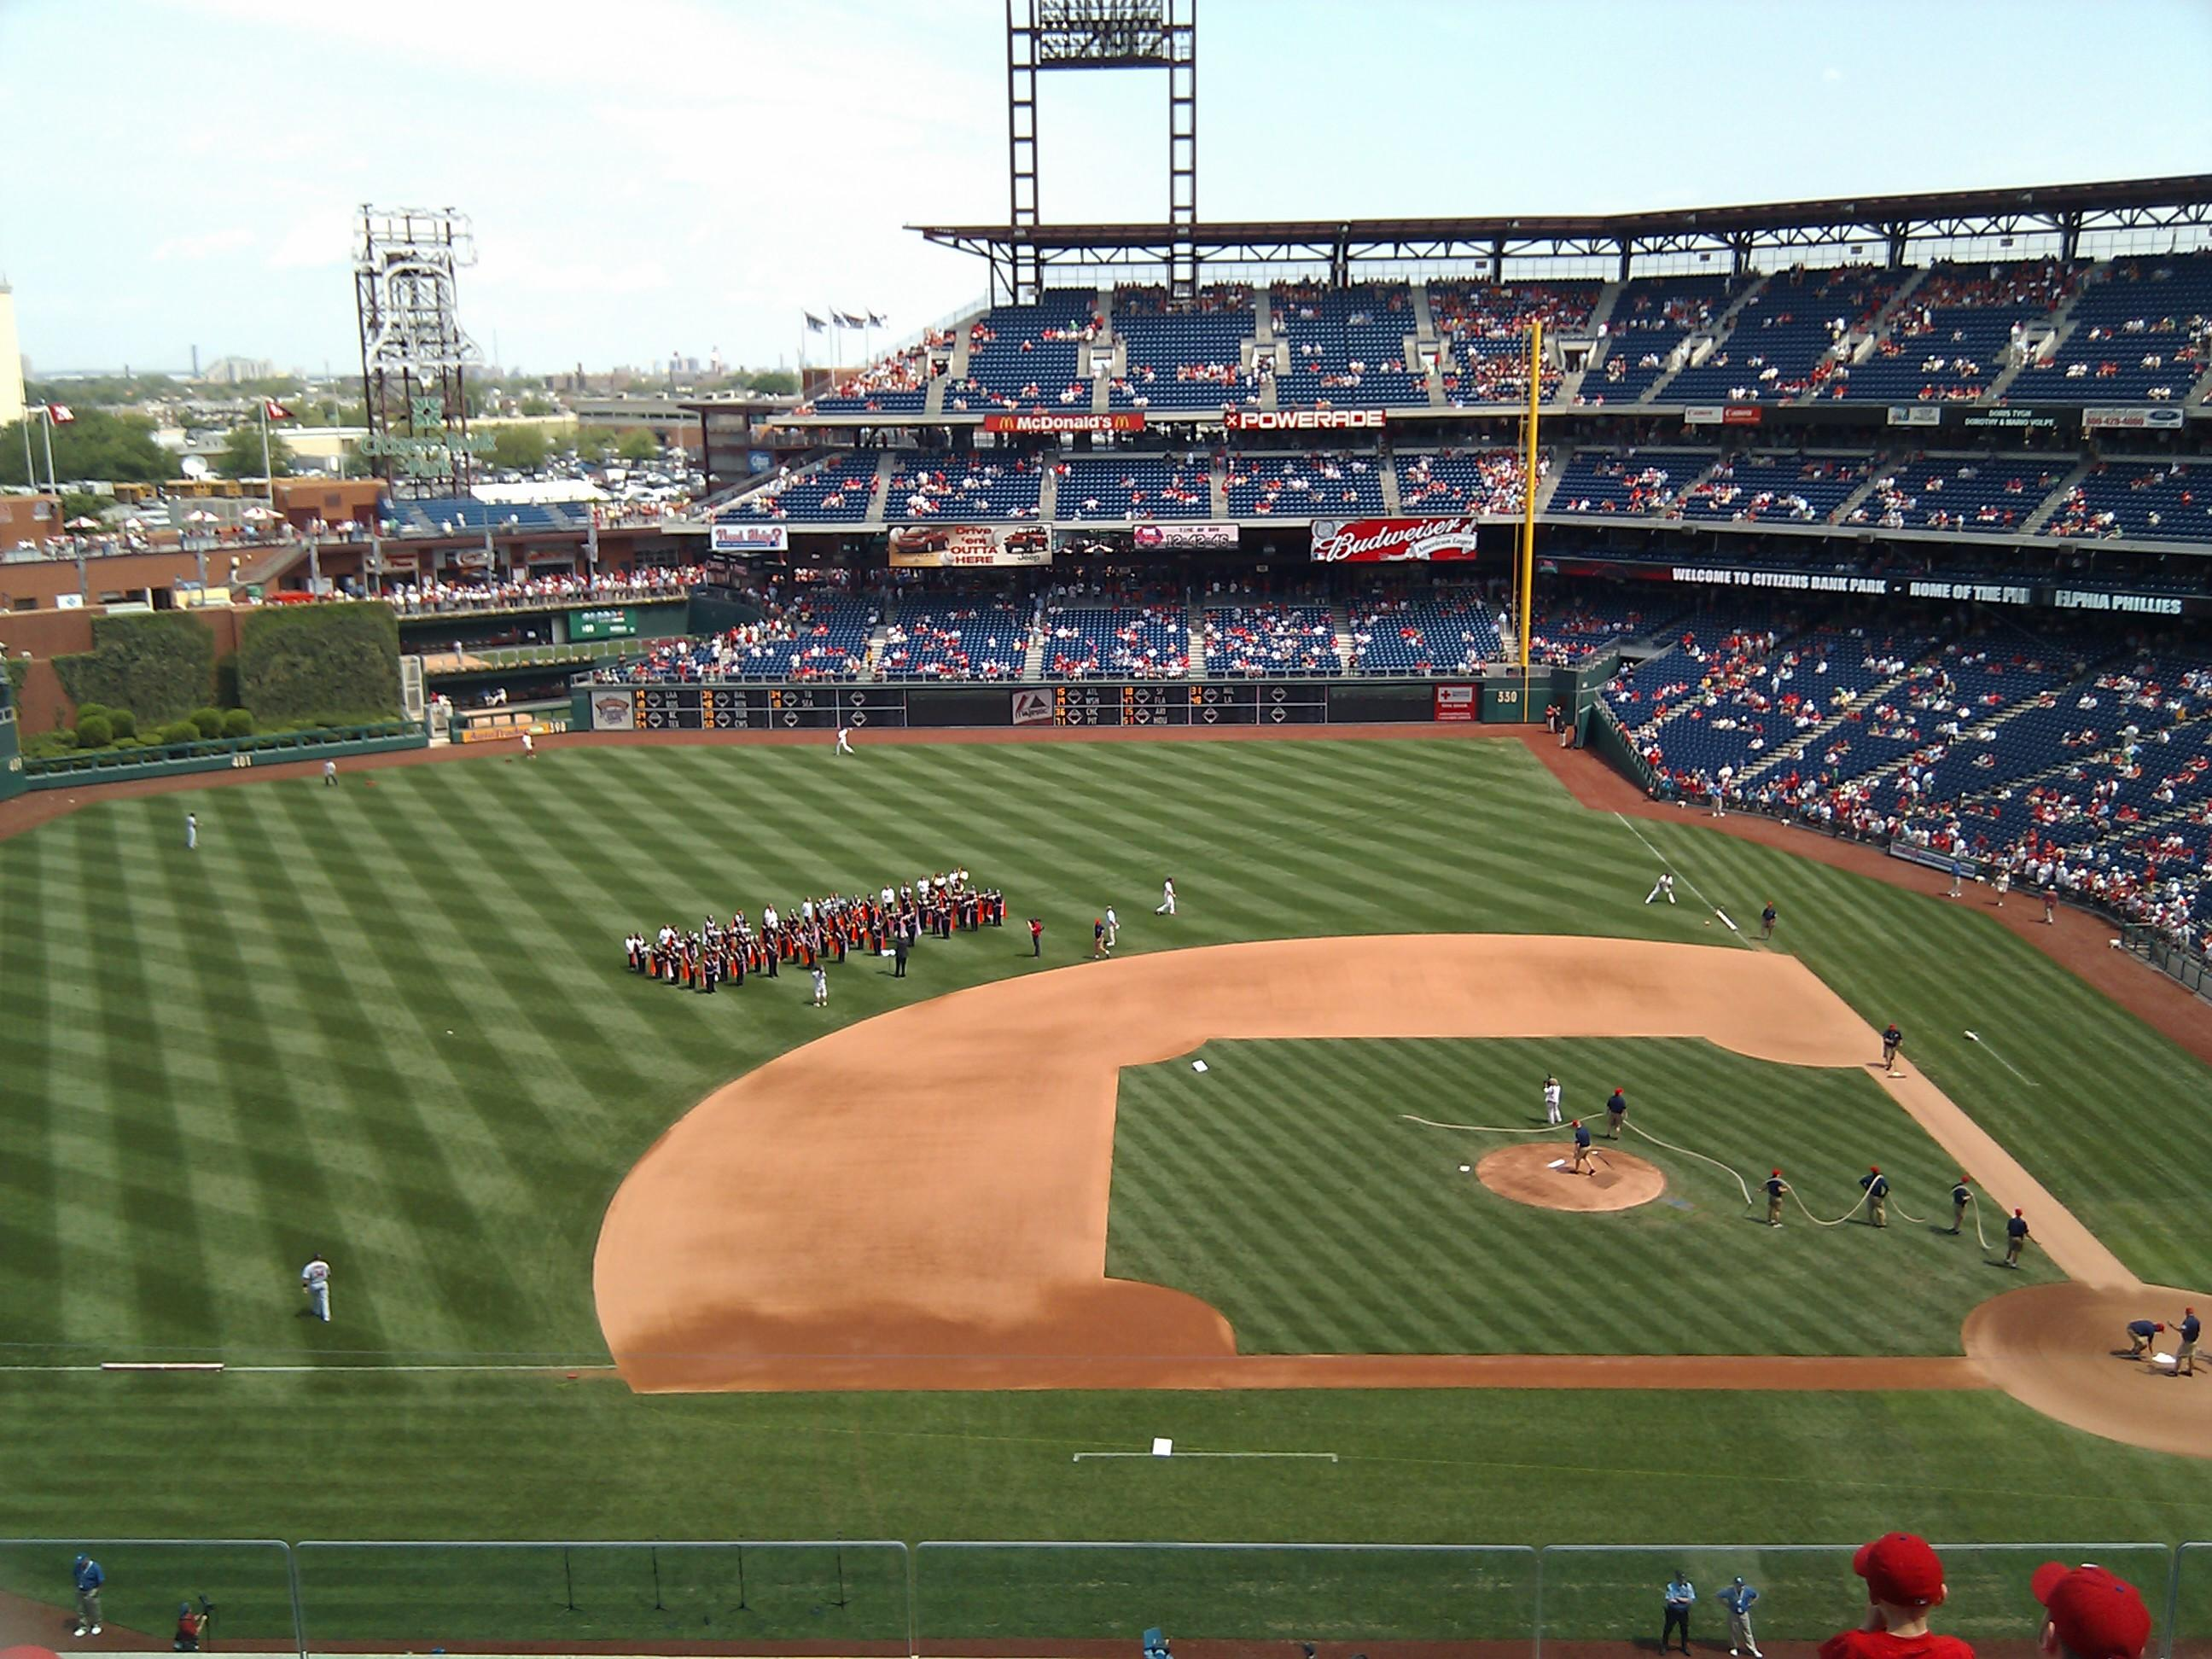 Citizens Bank Park Section 326 Row 6 Seat 14